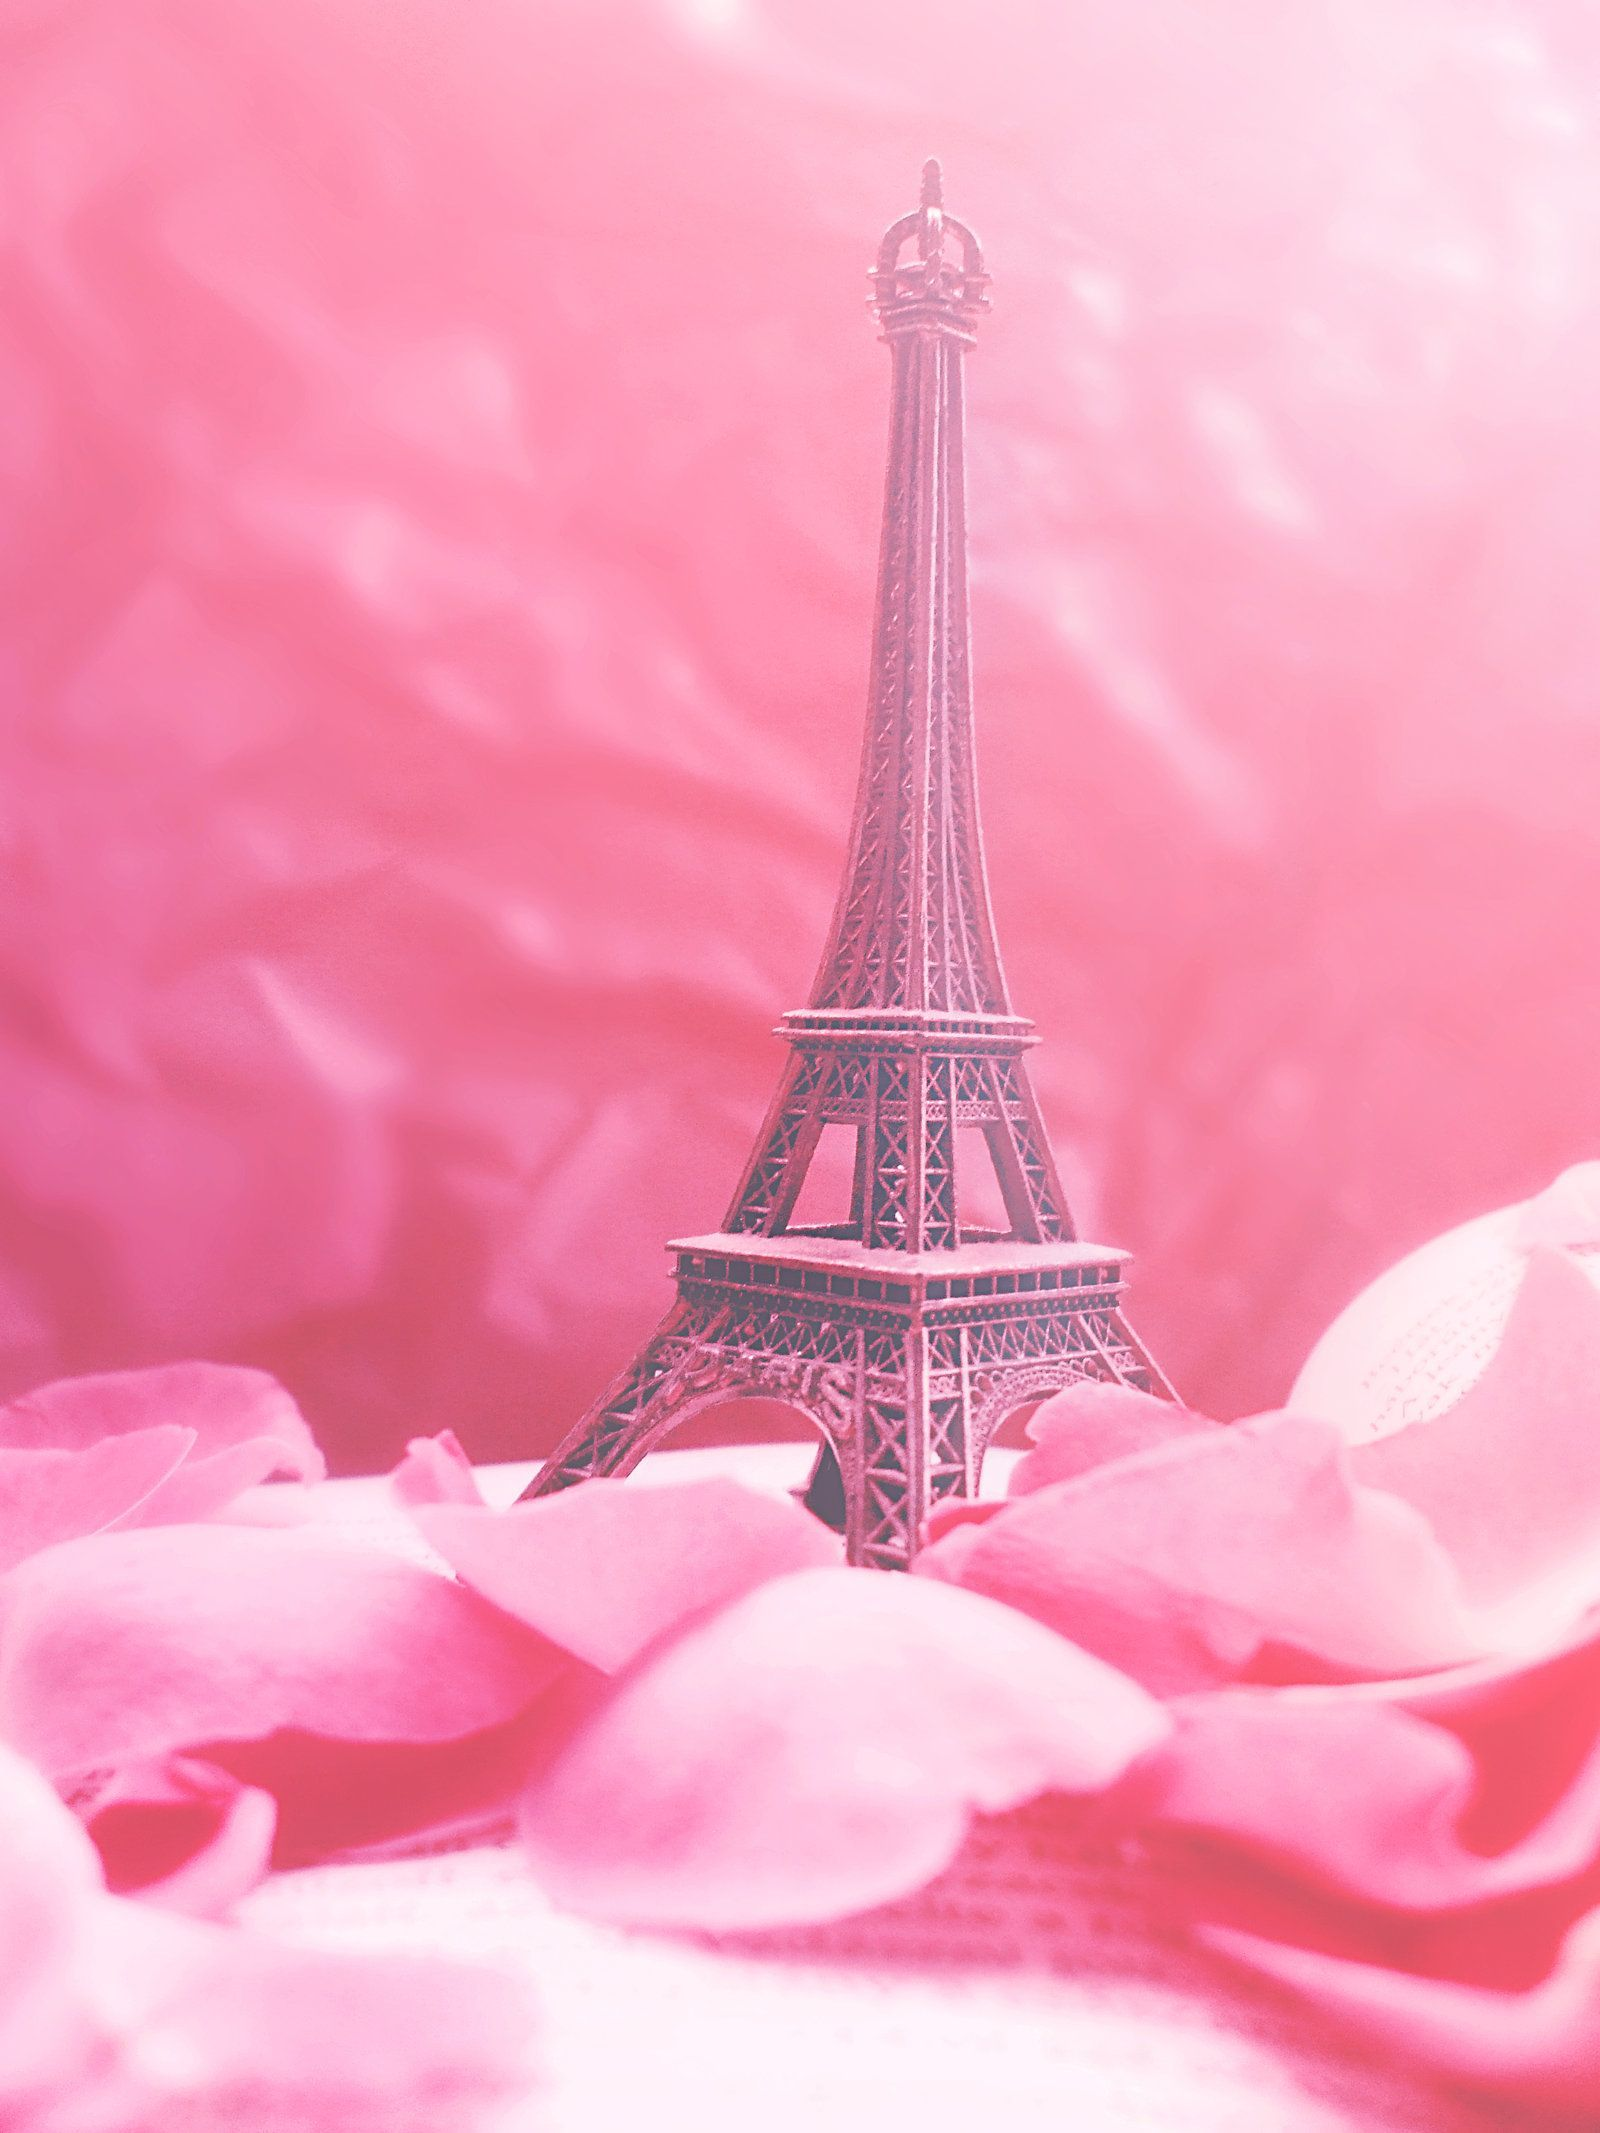 Pink Paris Iphone Wallpapers Top Free Pink Paris Iphone Backgrounds Wallpaperaccess